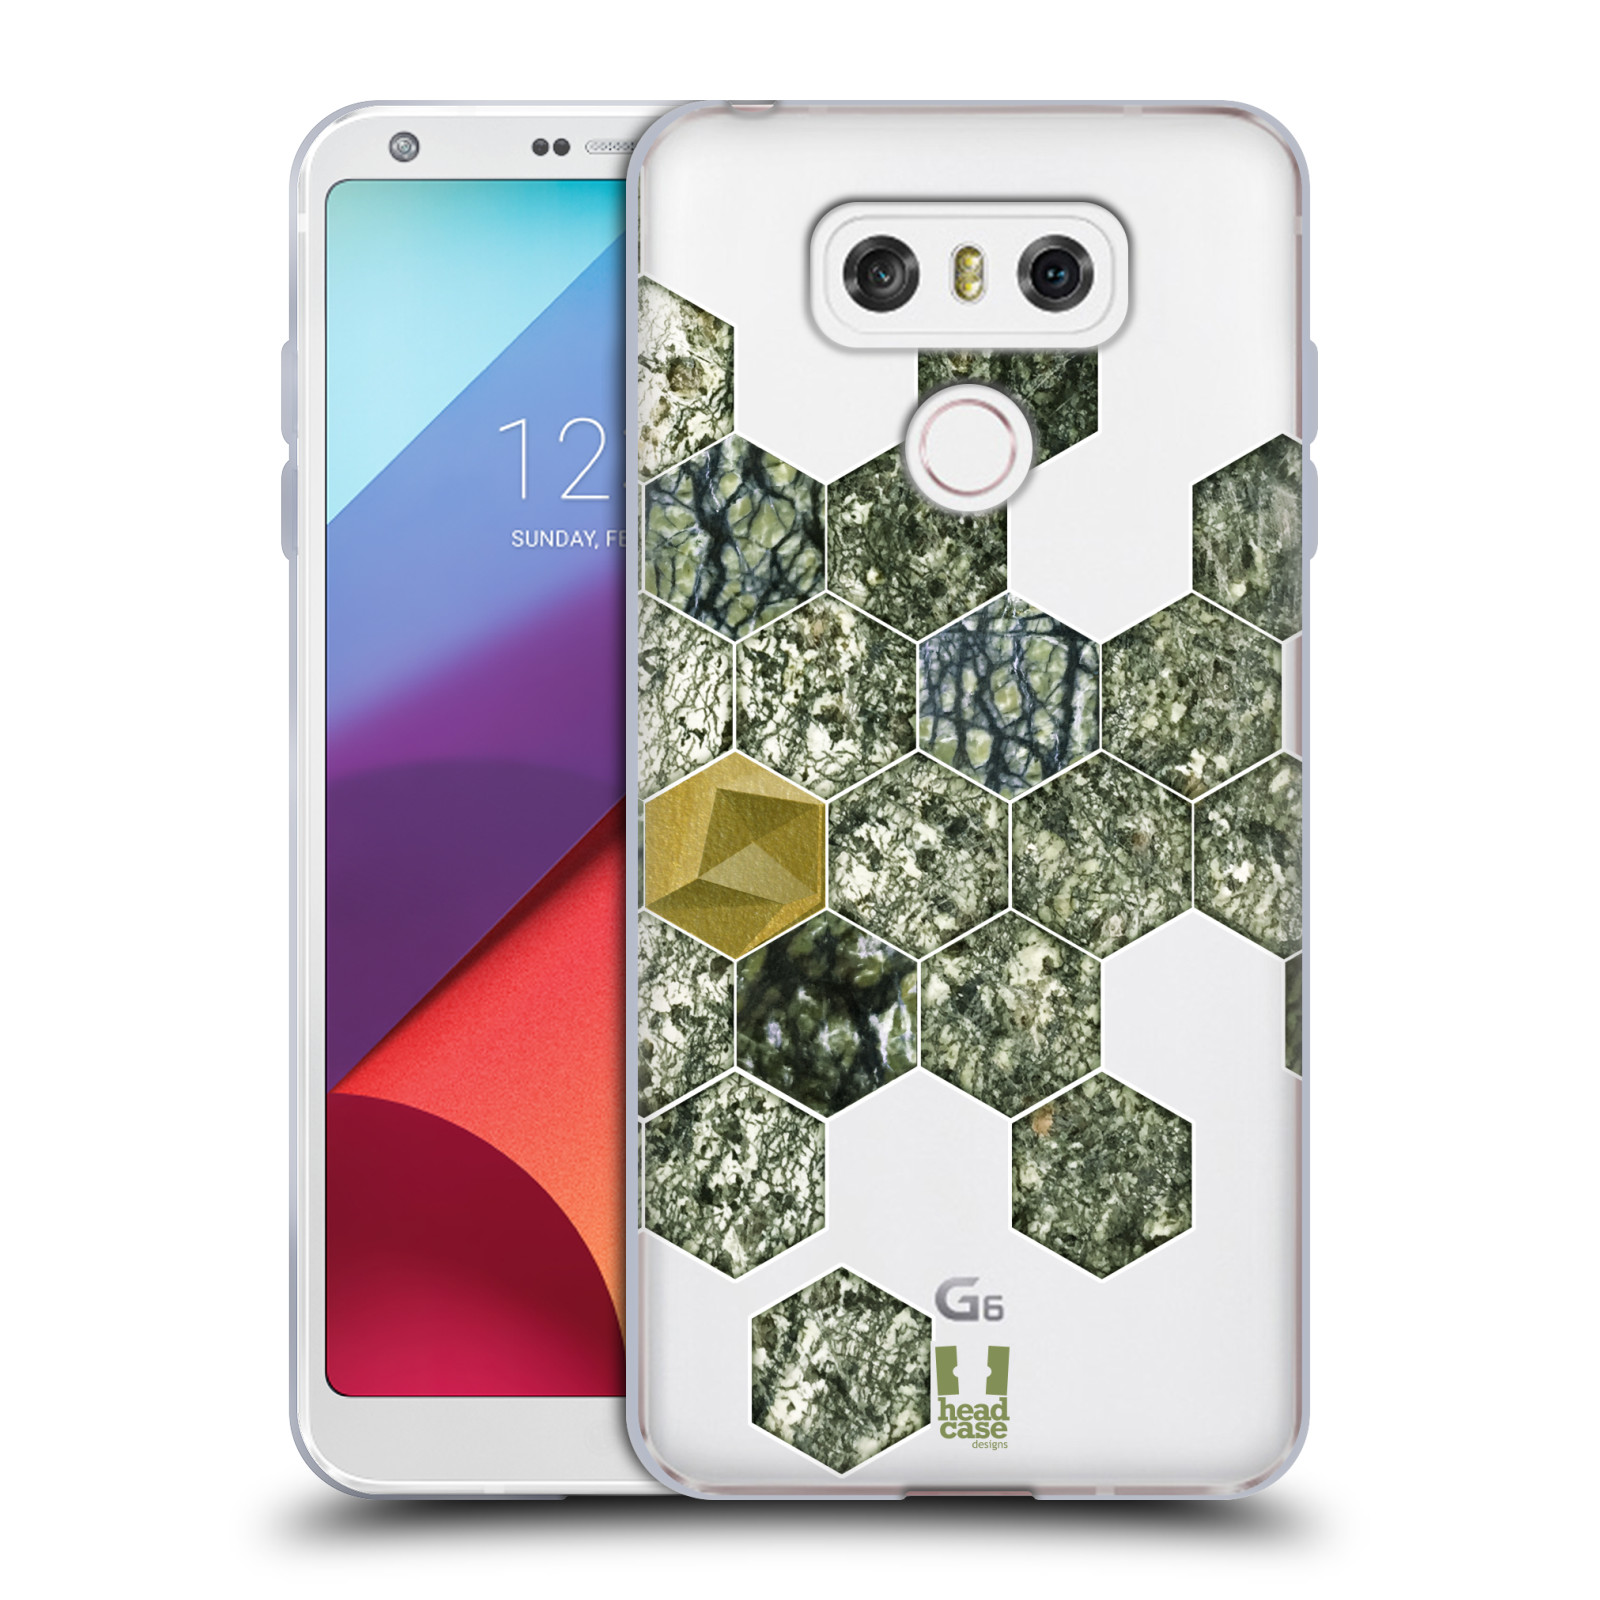 HEAD-CASE-DESIGNS-CLASSY-STONE-PRINTS-SOFT-GEL-CASE-FOR-LG-G6